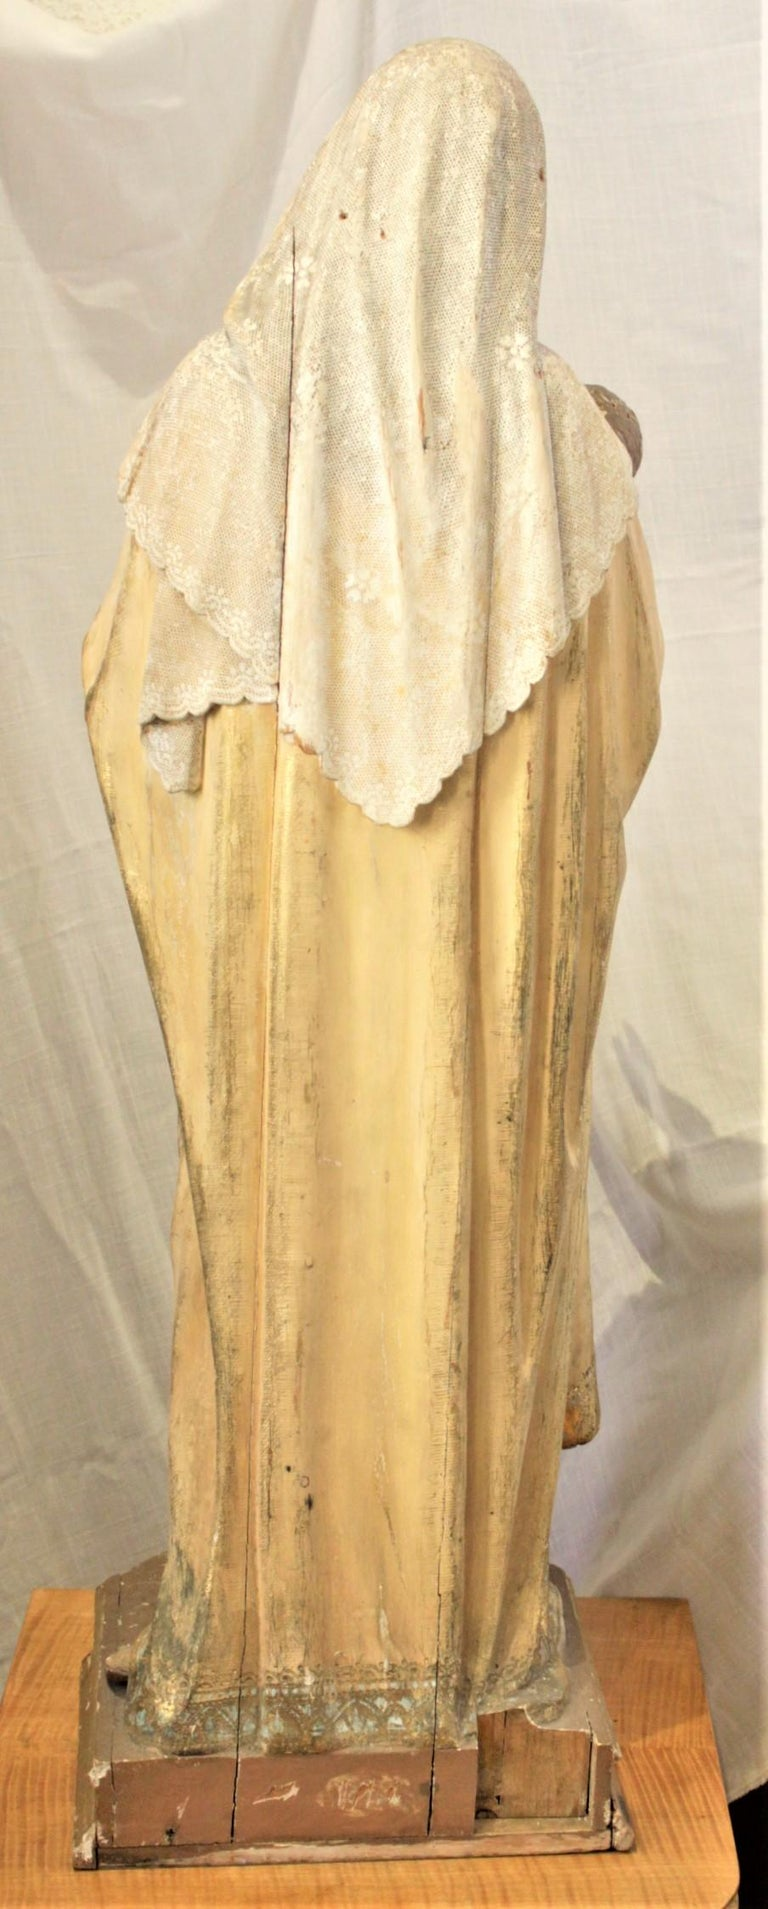 Antique Hand-Carved & Polychrome Painted Sculpture of The Madonna and Child In Good Condition For Sale In Hamilton, Ontario